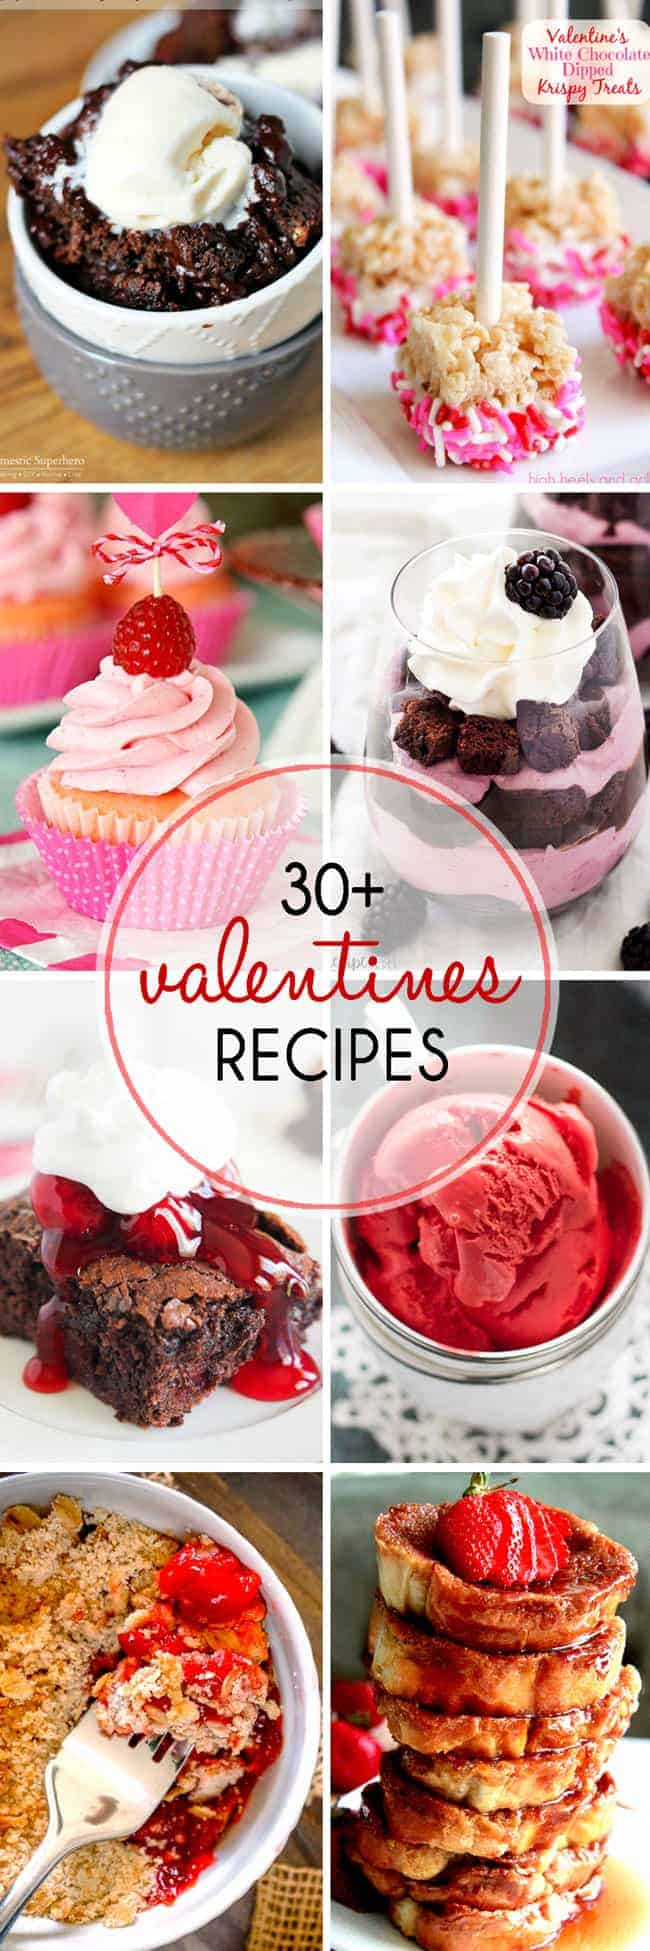 30+ Valentine's Day Recipes! Impress your Valentine with these easy and impressive Valentine's Day recipes!